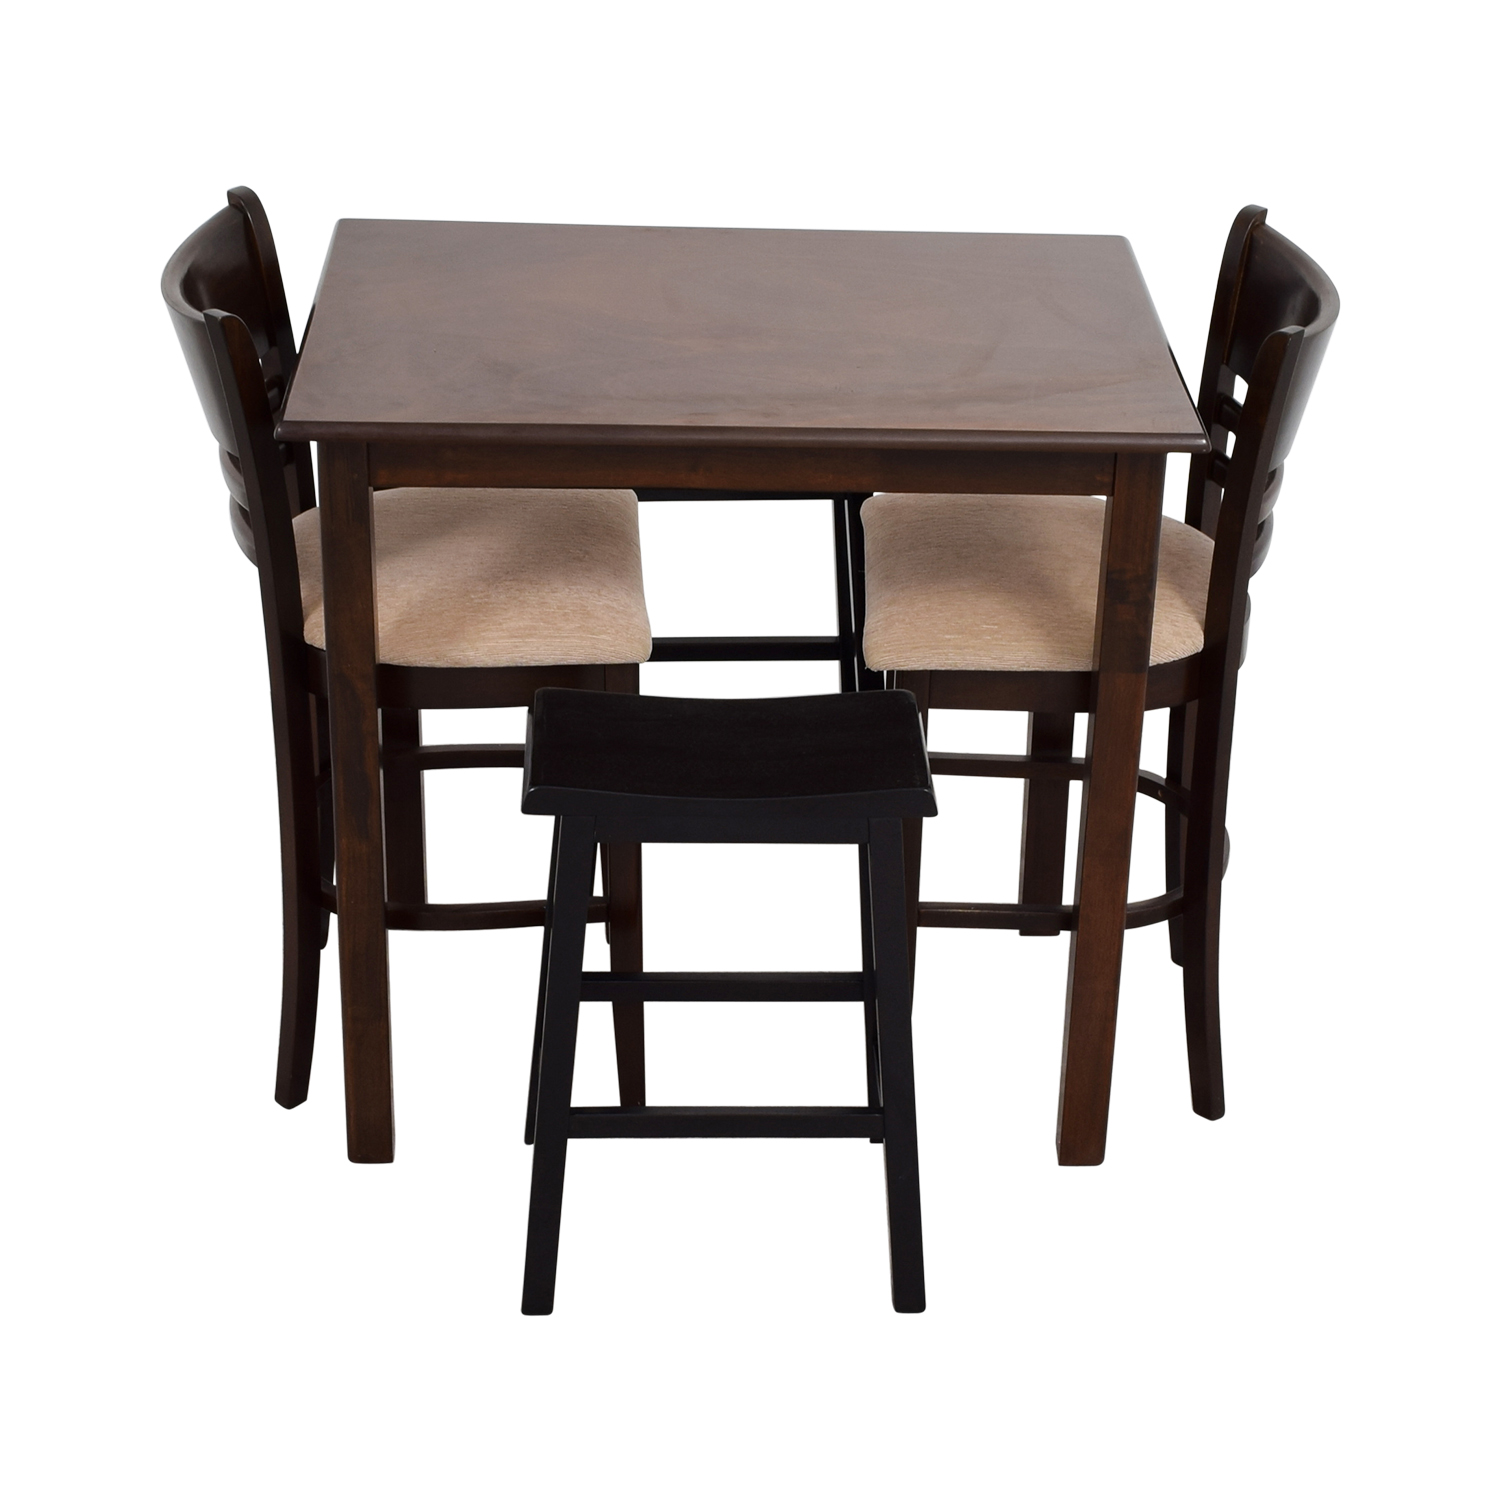 Simple Bar Table with Two Chairs and Two Stools second hand